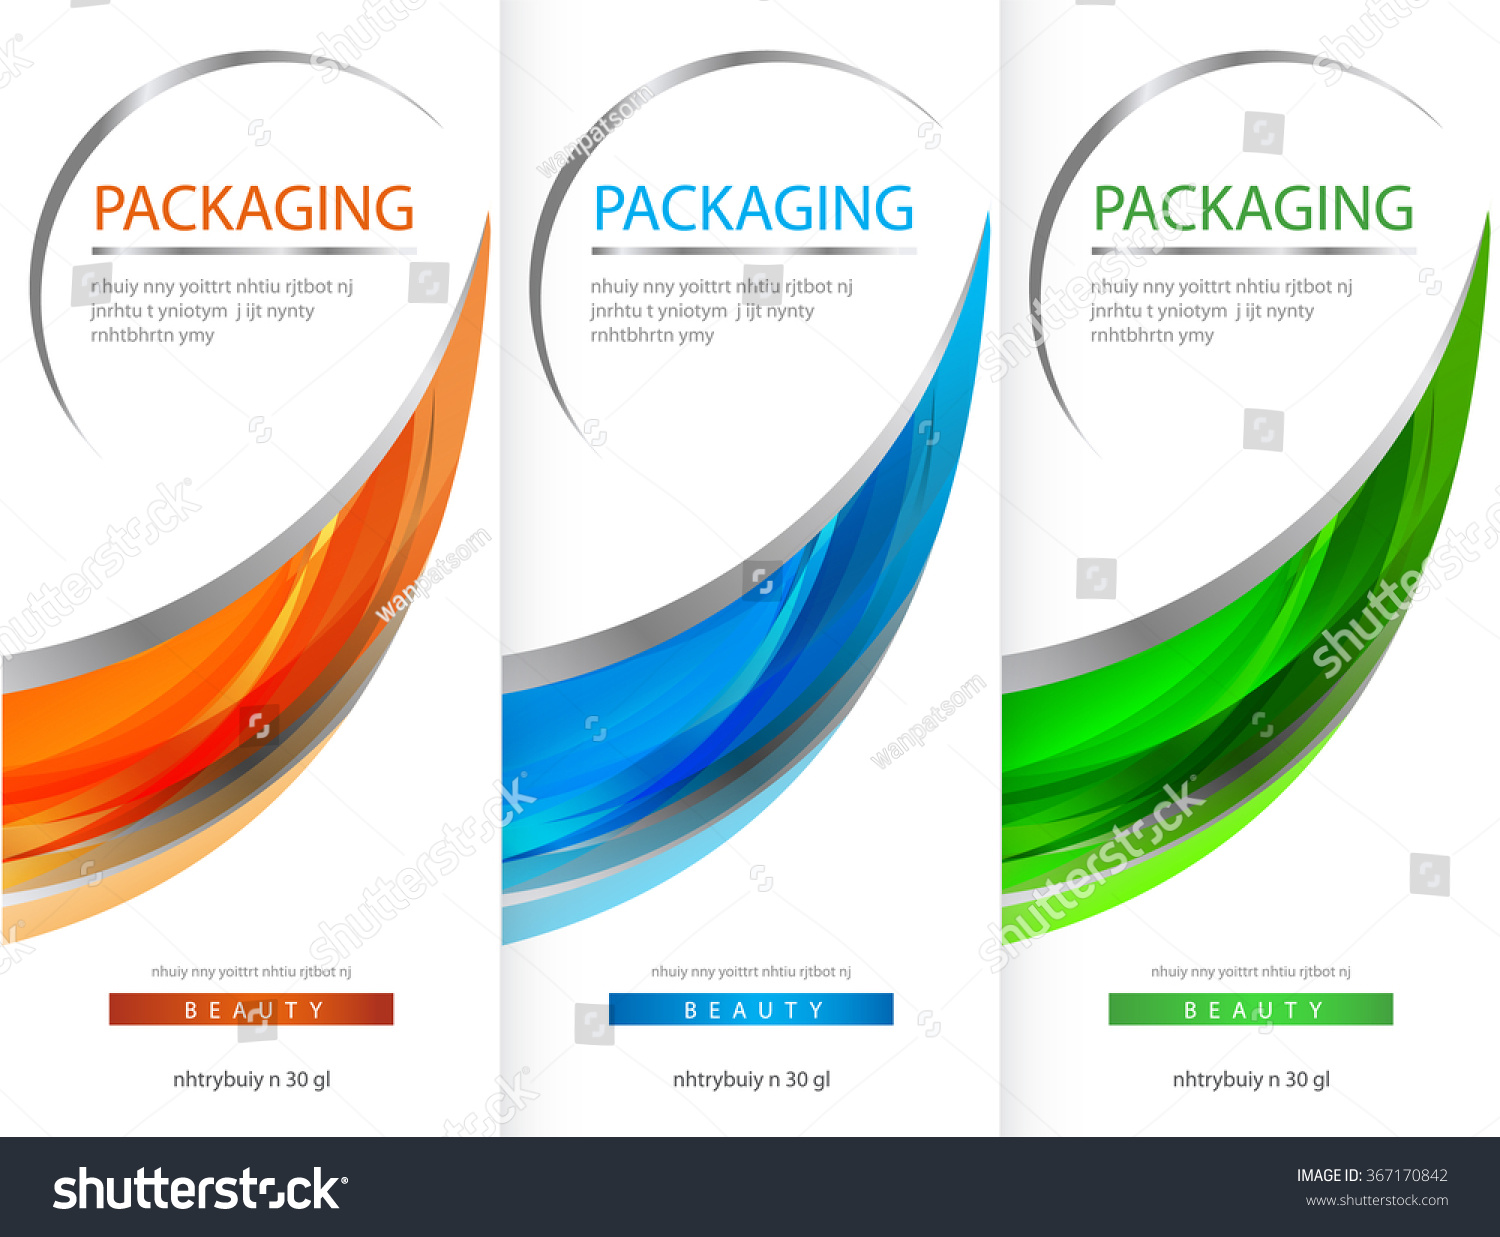 Modern Exhibition Stand Vector : Package template box design vector illustration stock